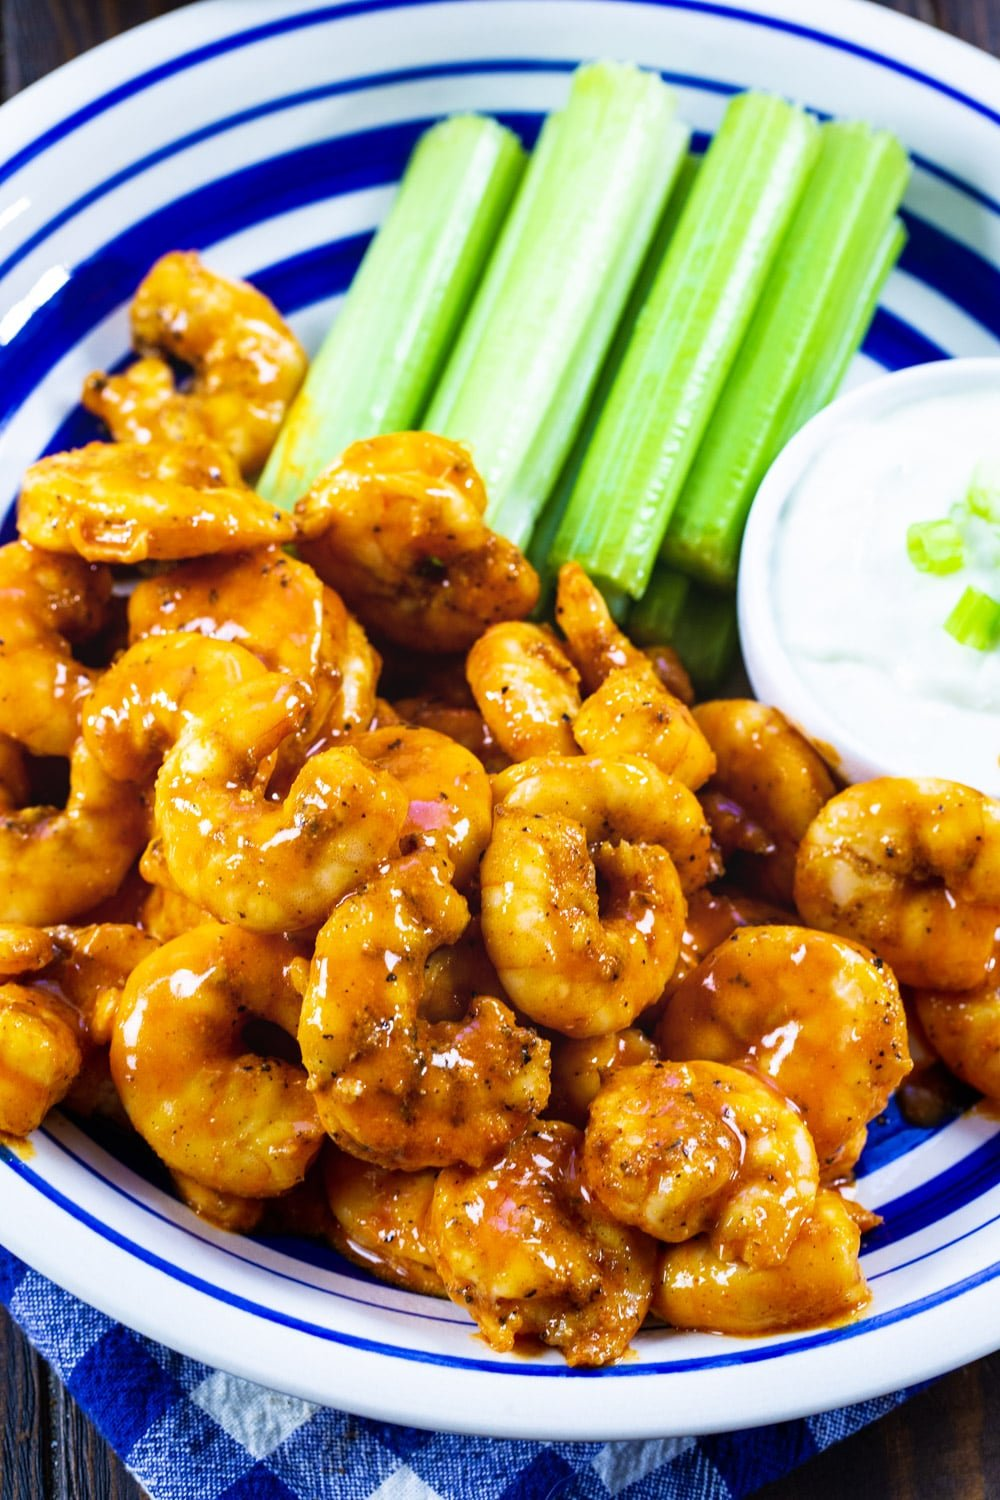 Shrimp coated in buffalo sauce on a blue and white plate.